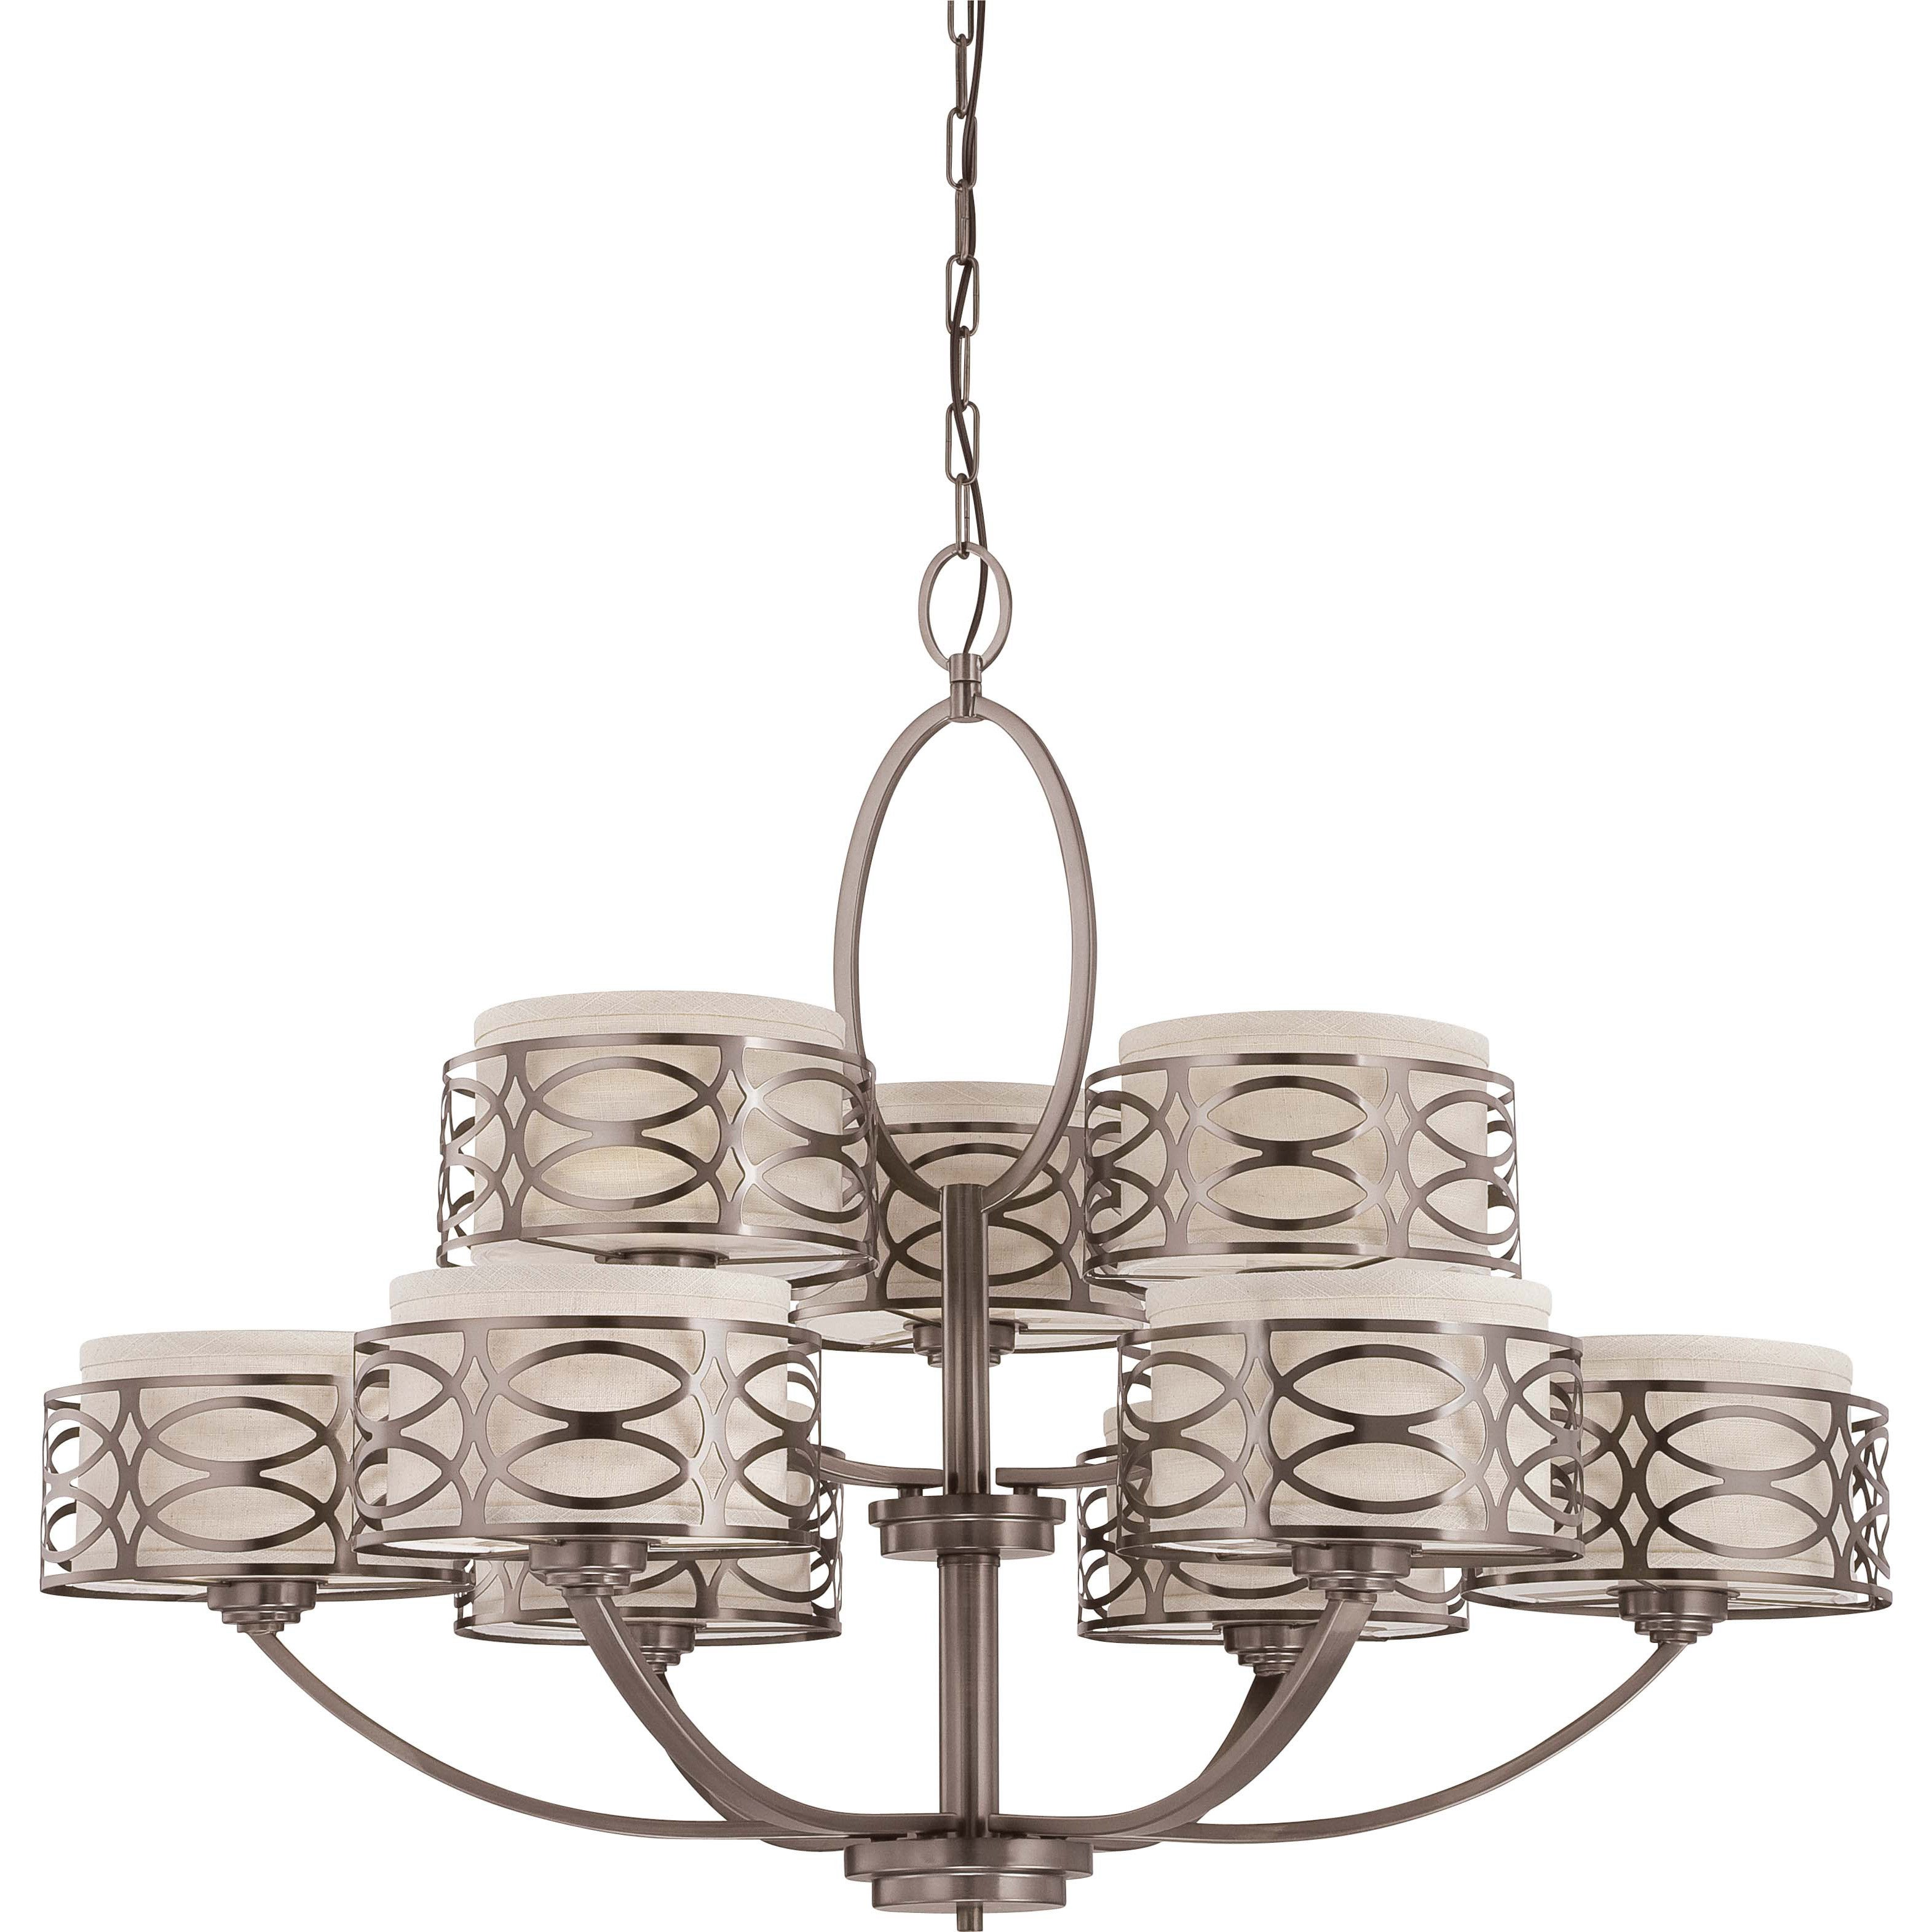 Harlow Bronze all Khaki Fabric Shades 9-Light Chandelier